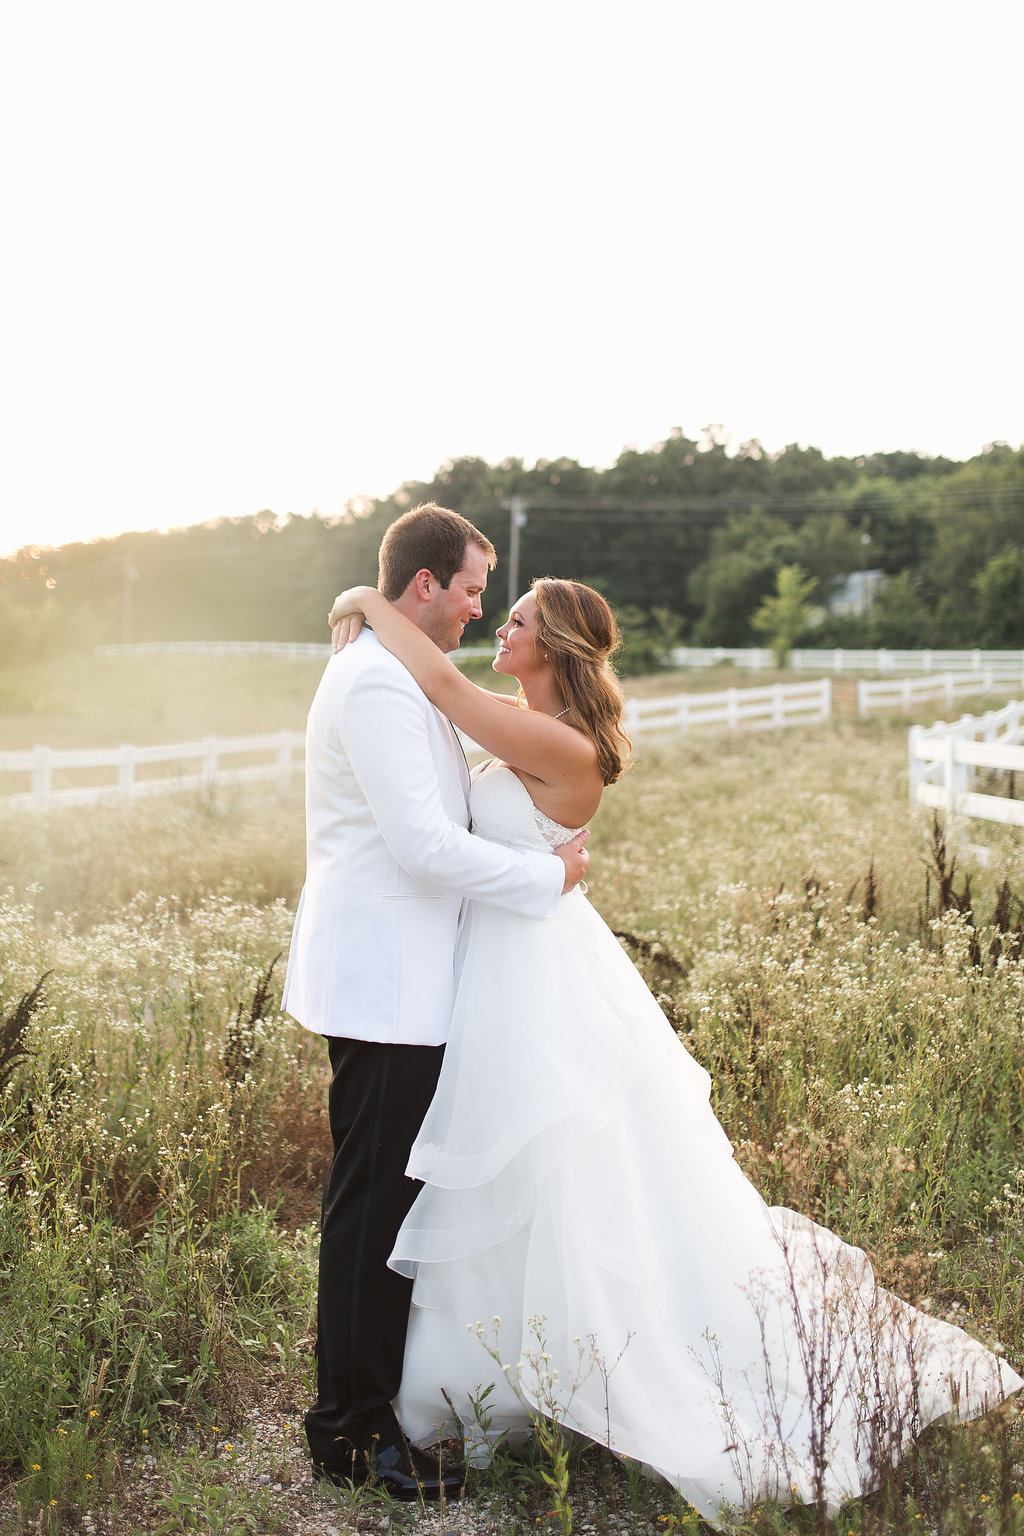 The perfect ending to a wonderful wedding!!   Cheers!  Erin    Location:  Sassafras Springs Vineyard   Photography:  Jo Johnson Photography   Floral:  Zuzu's Petals   Catering:  The Event Group   Paper:  Shindig   Rentals: Eventures  DJ:  Brock Entertainment